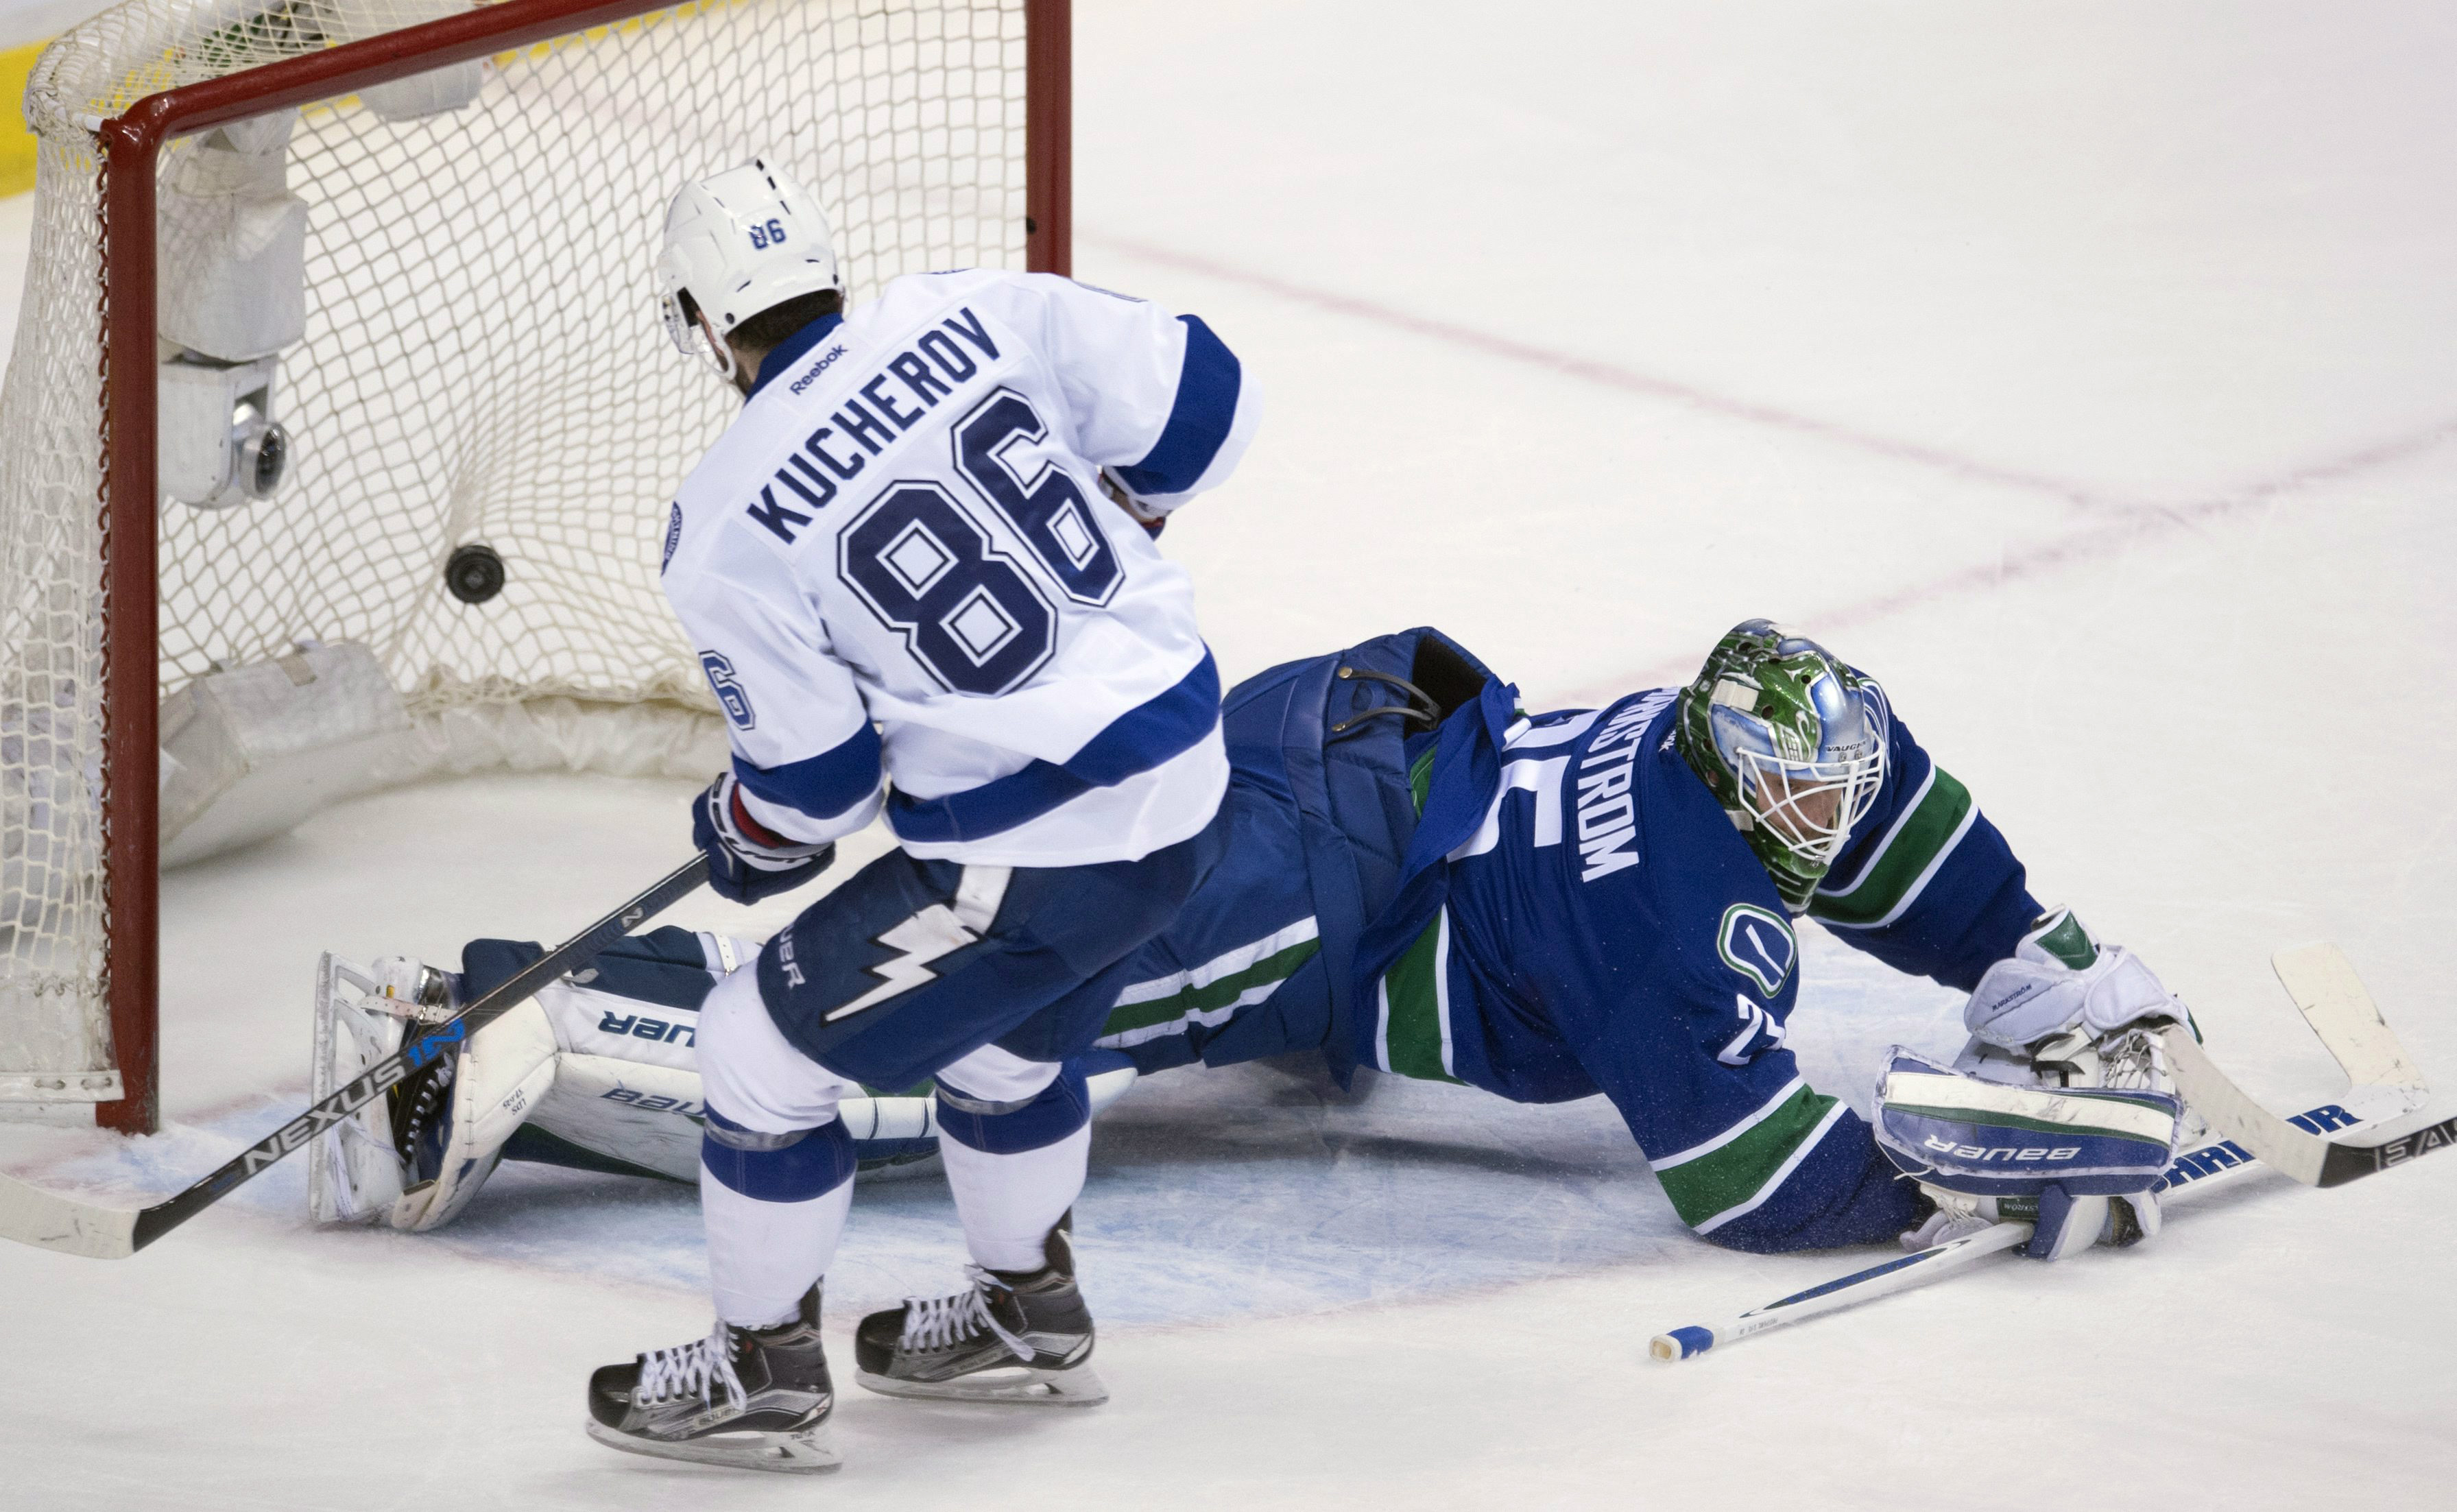 Tampa Bay Lightning right wing Nikita Kucherov (86) puts the game-winning goal past Vancouver Canucks goalie Jacob Markstrom (25) during overtime in an NHL hockey game Saturday, Jan. 9, 2016, in Vancouver, British Columbia. (Jonathan Hayward/The Canadian